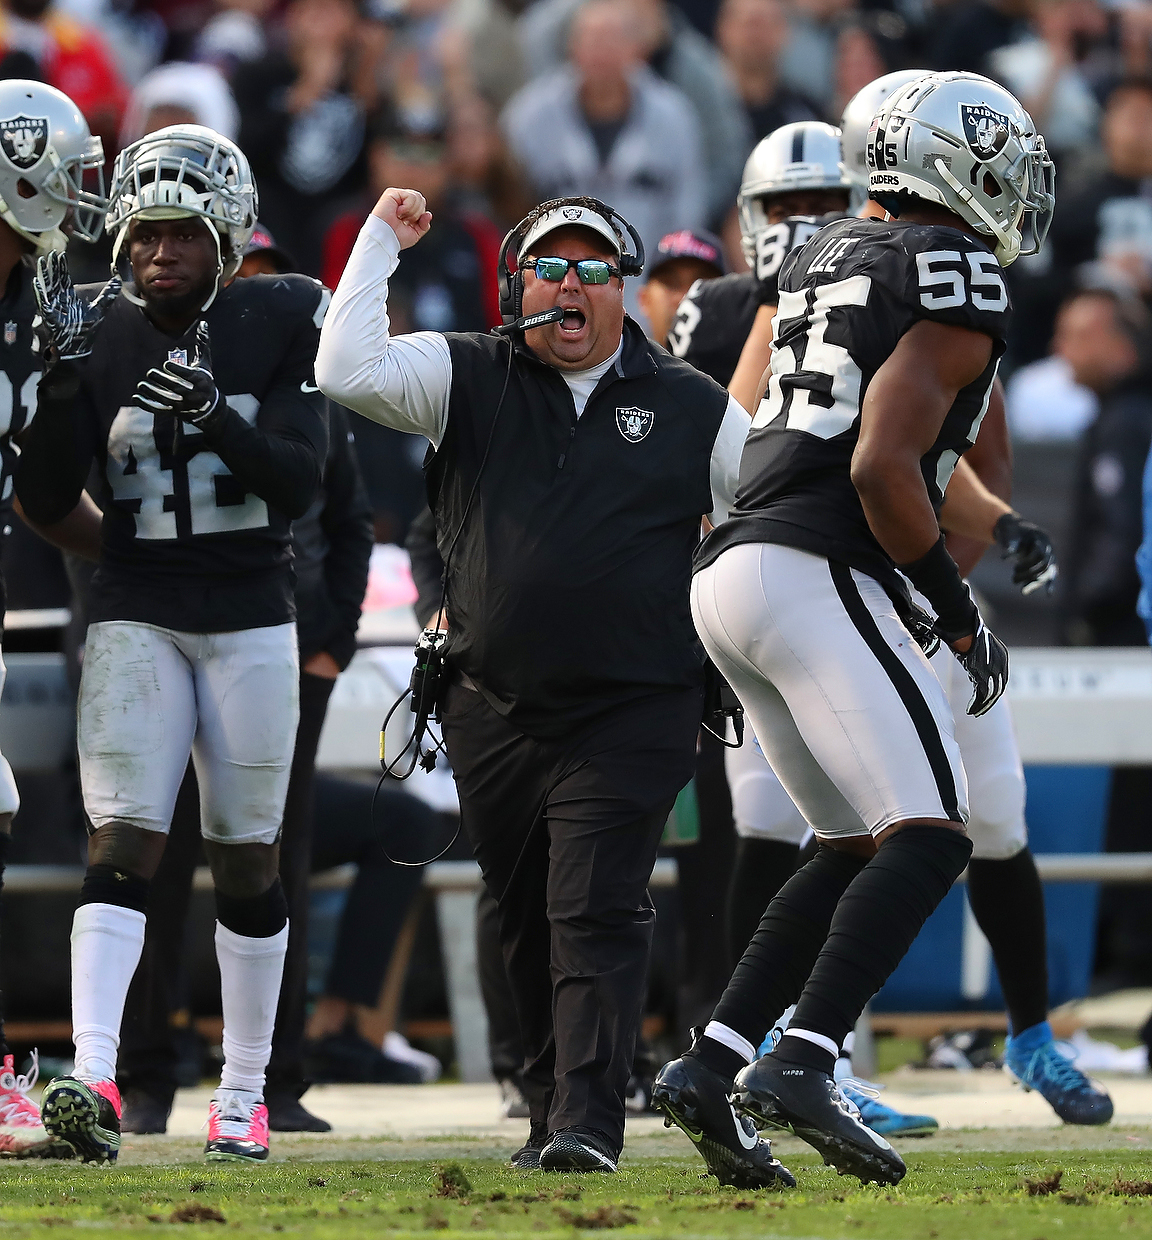 Inside the Raiders: Sorry Raider Nation, firing Paul Guenther isn't a solution